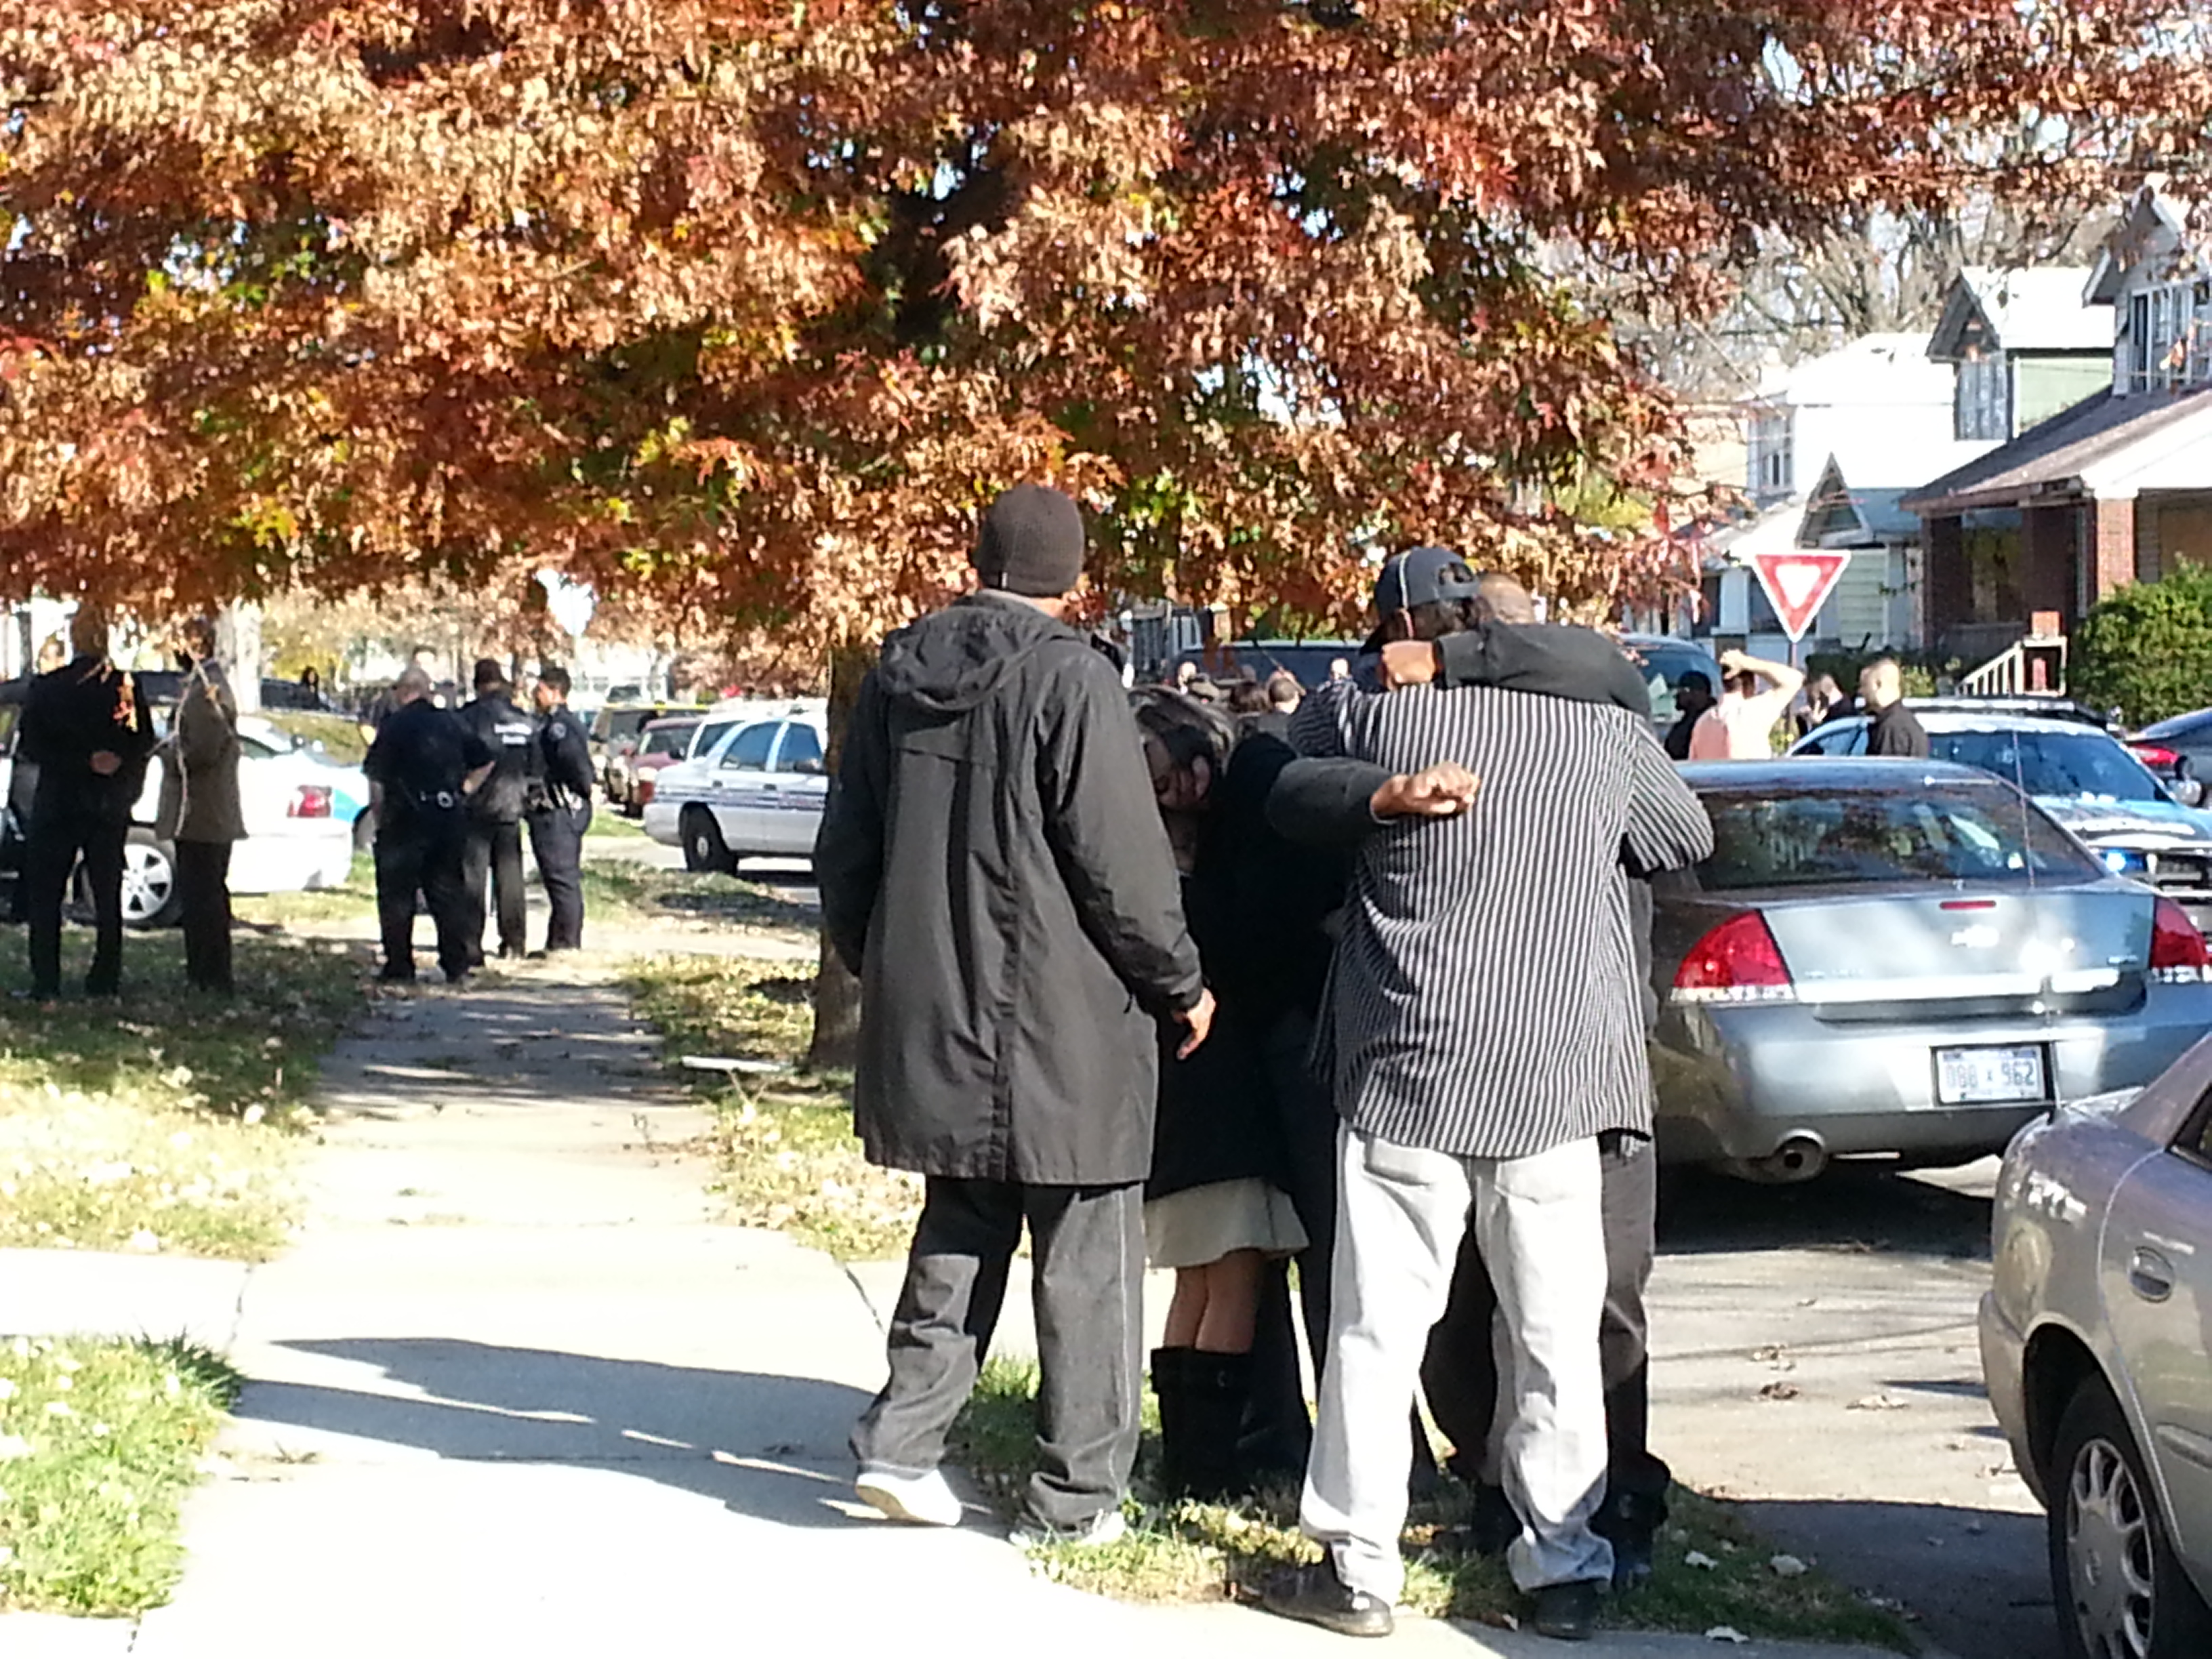 Family members hug after a 9-year-old boy was killed while playing with a gun. (credit: Jon Hewett/WWJ)